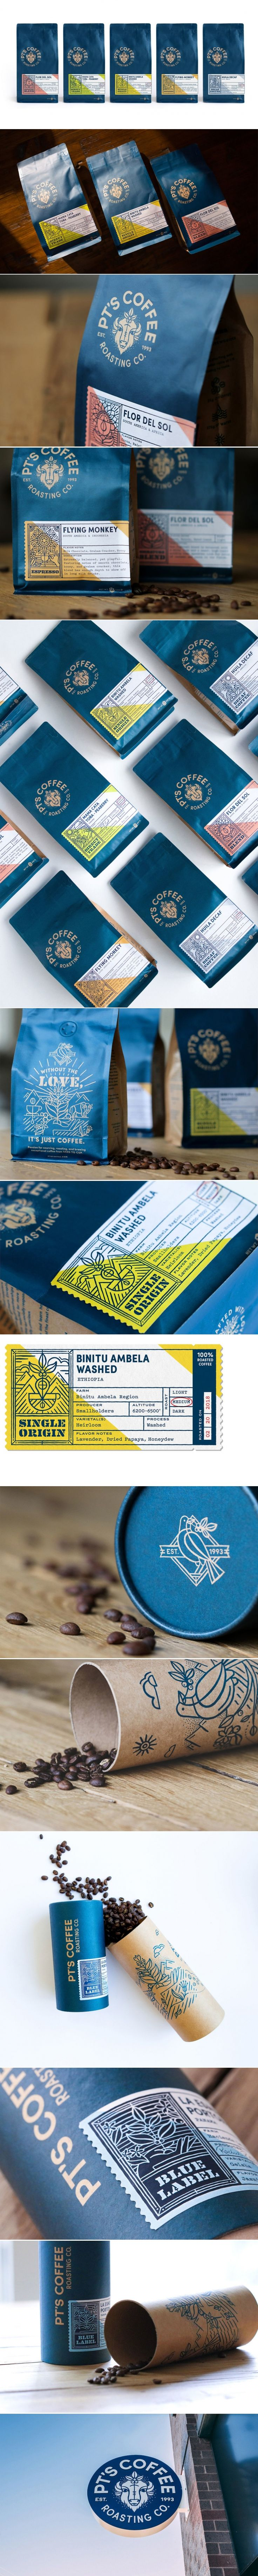 1255 best PACKAGING - Just Awesome images on Pinterest | Packaging ...